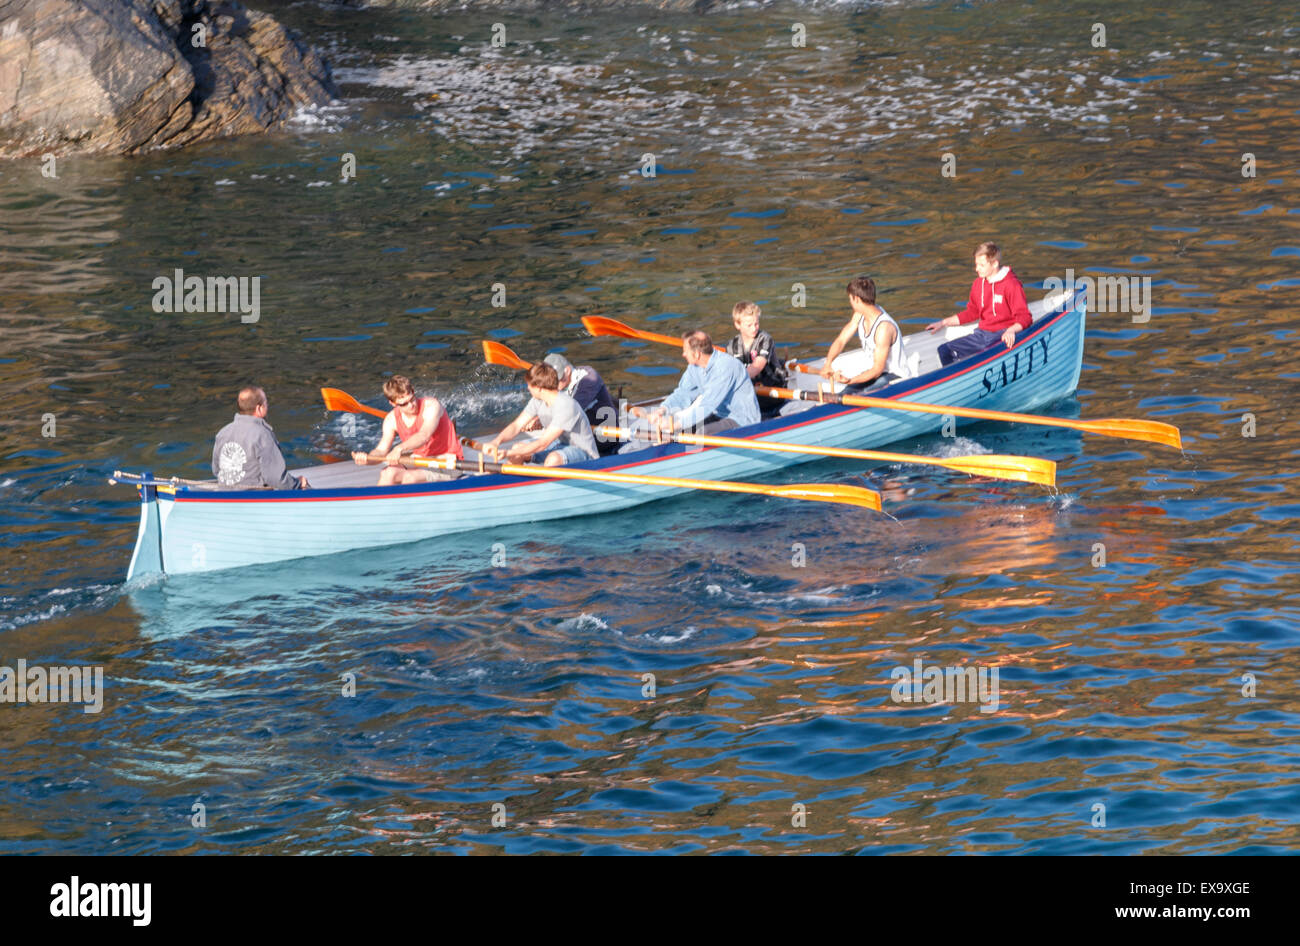 Gig racing - the rowers get the boat moving across the sea  at  Cadgwith Cove Cornwall - Stock Image